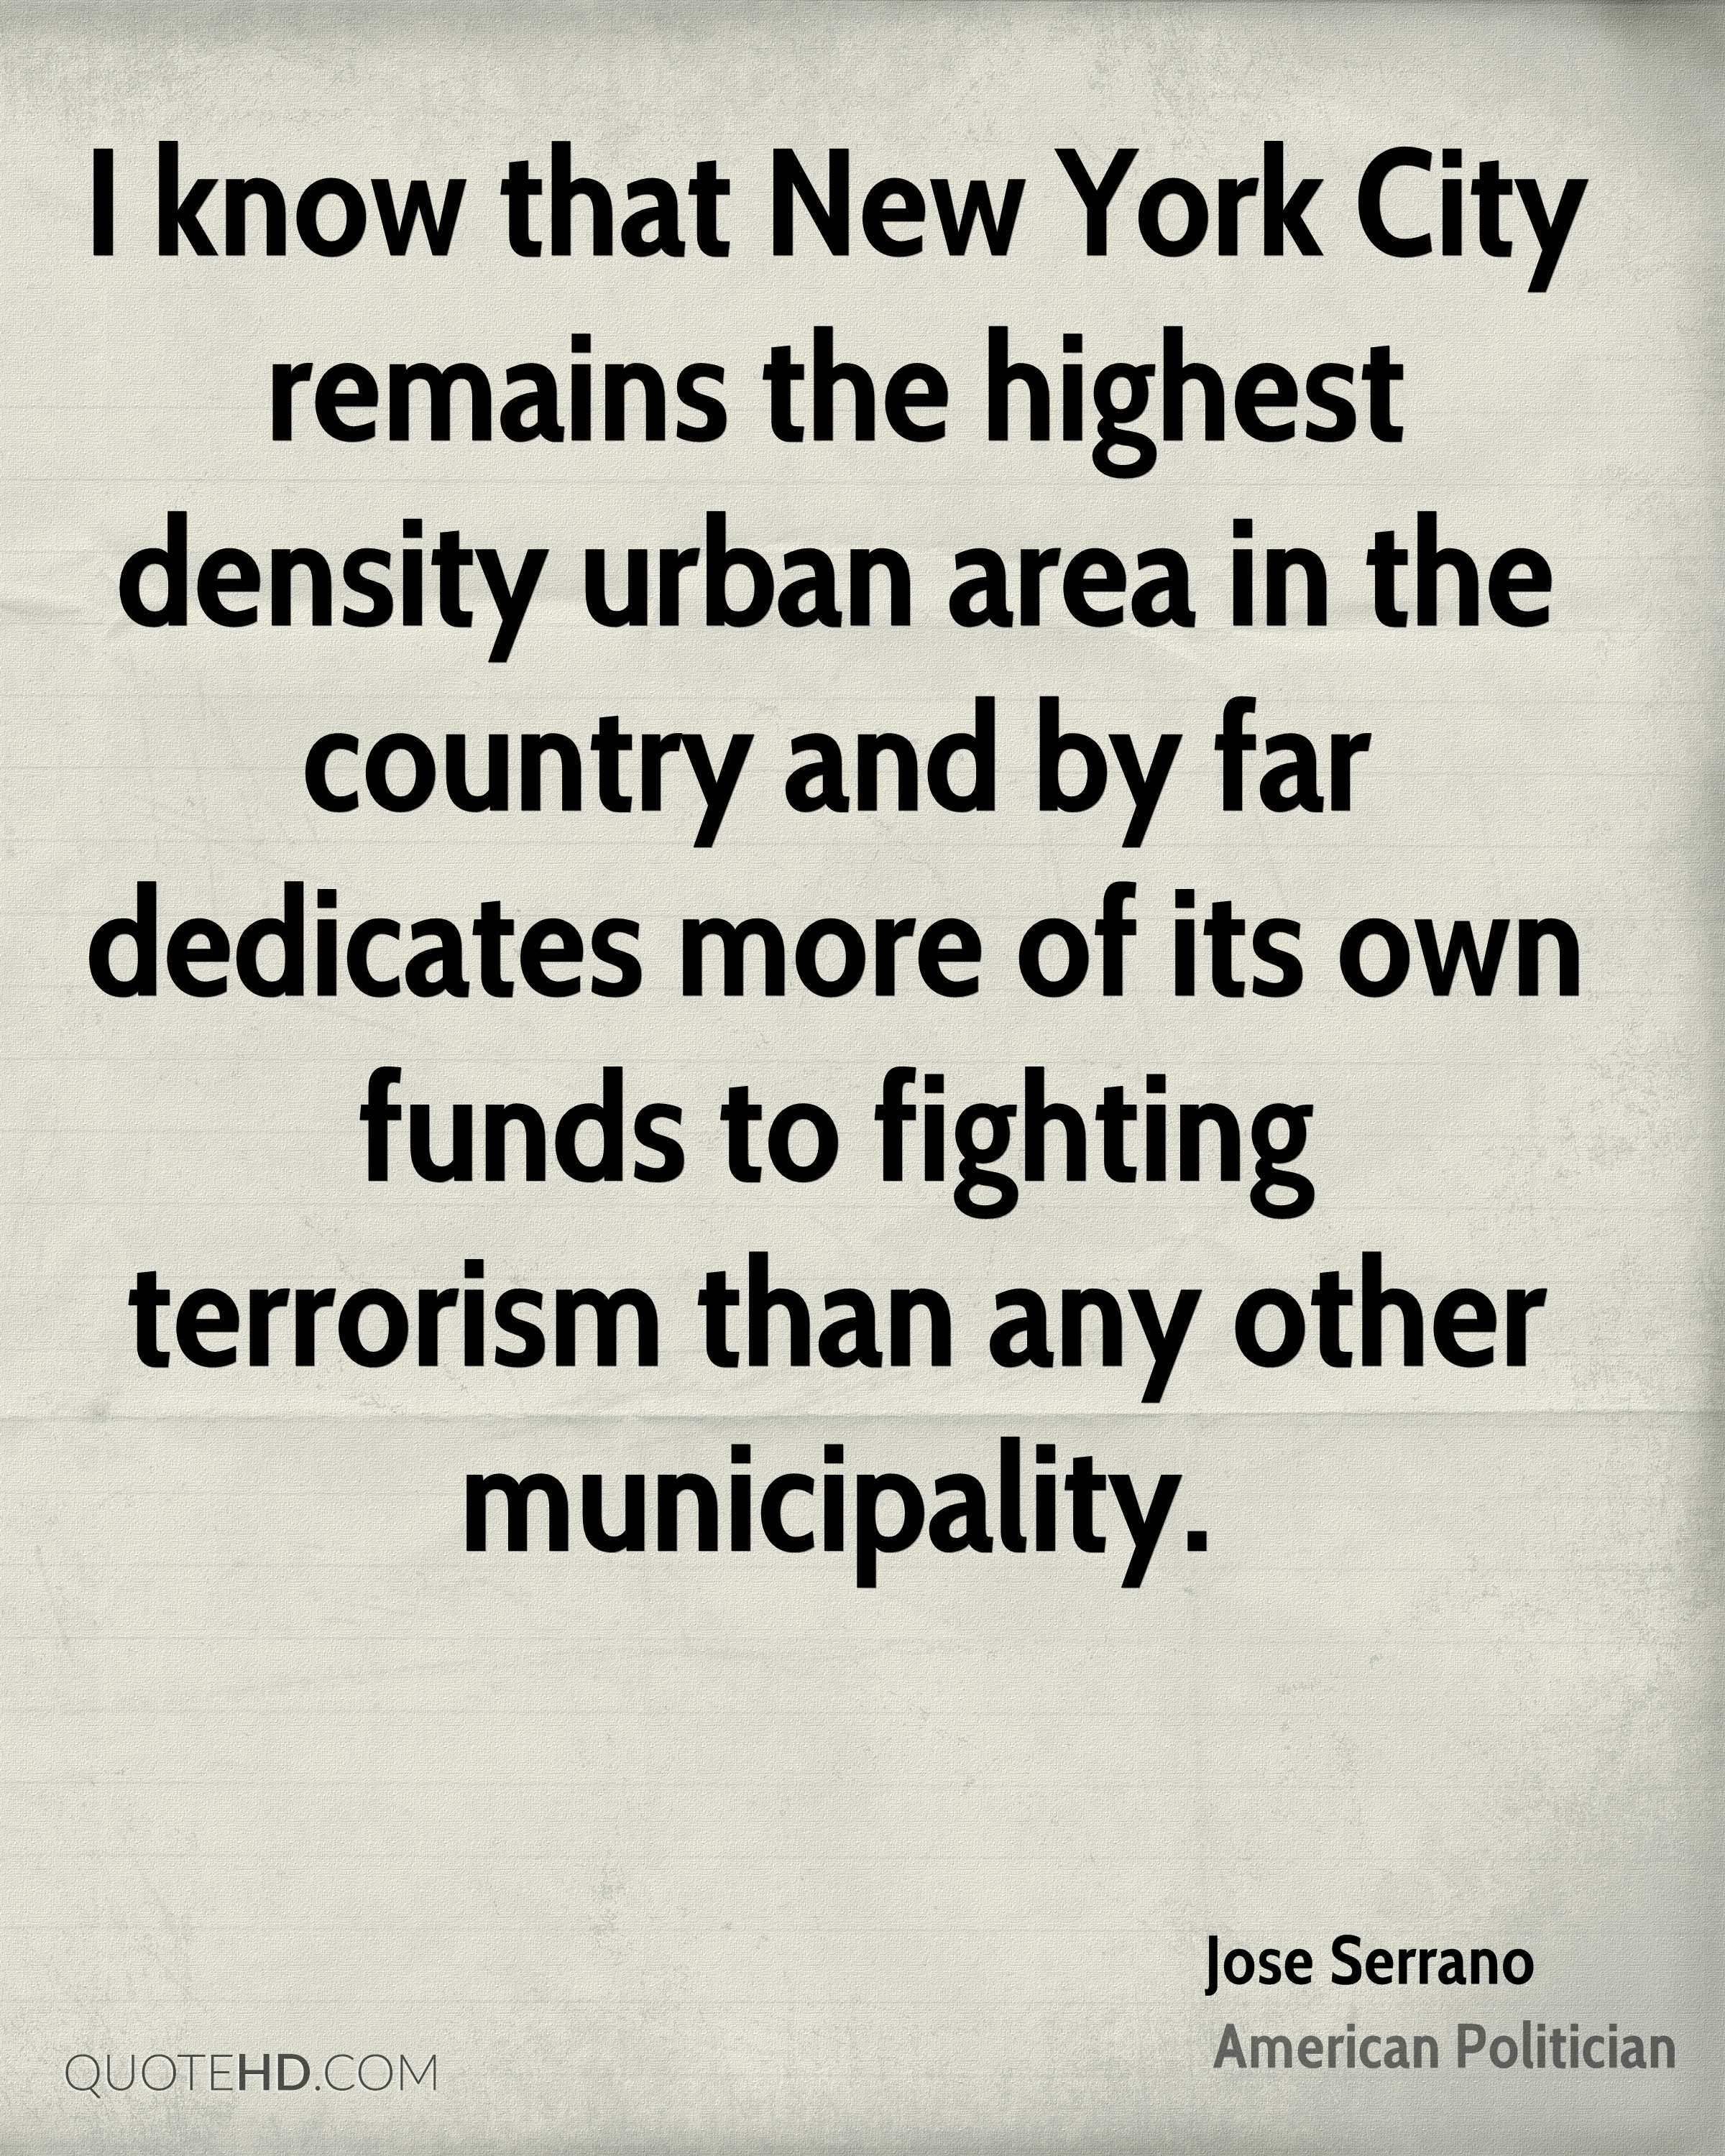 I know that New York City remains the highest density urban area in the country and by far dedicates more of its own funds to fighting terrorism than any other municipality.